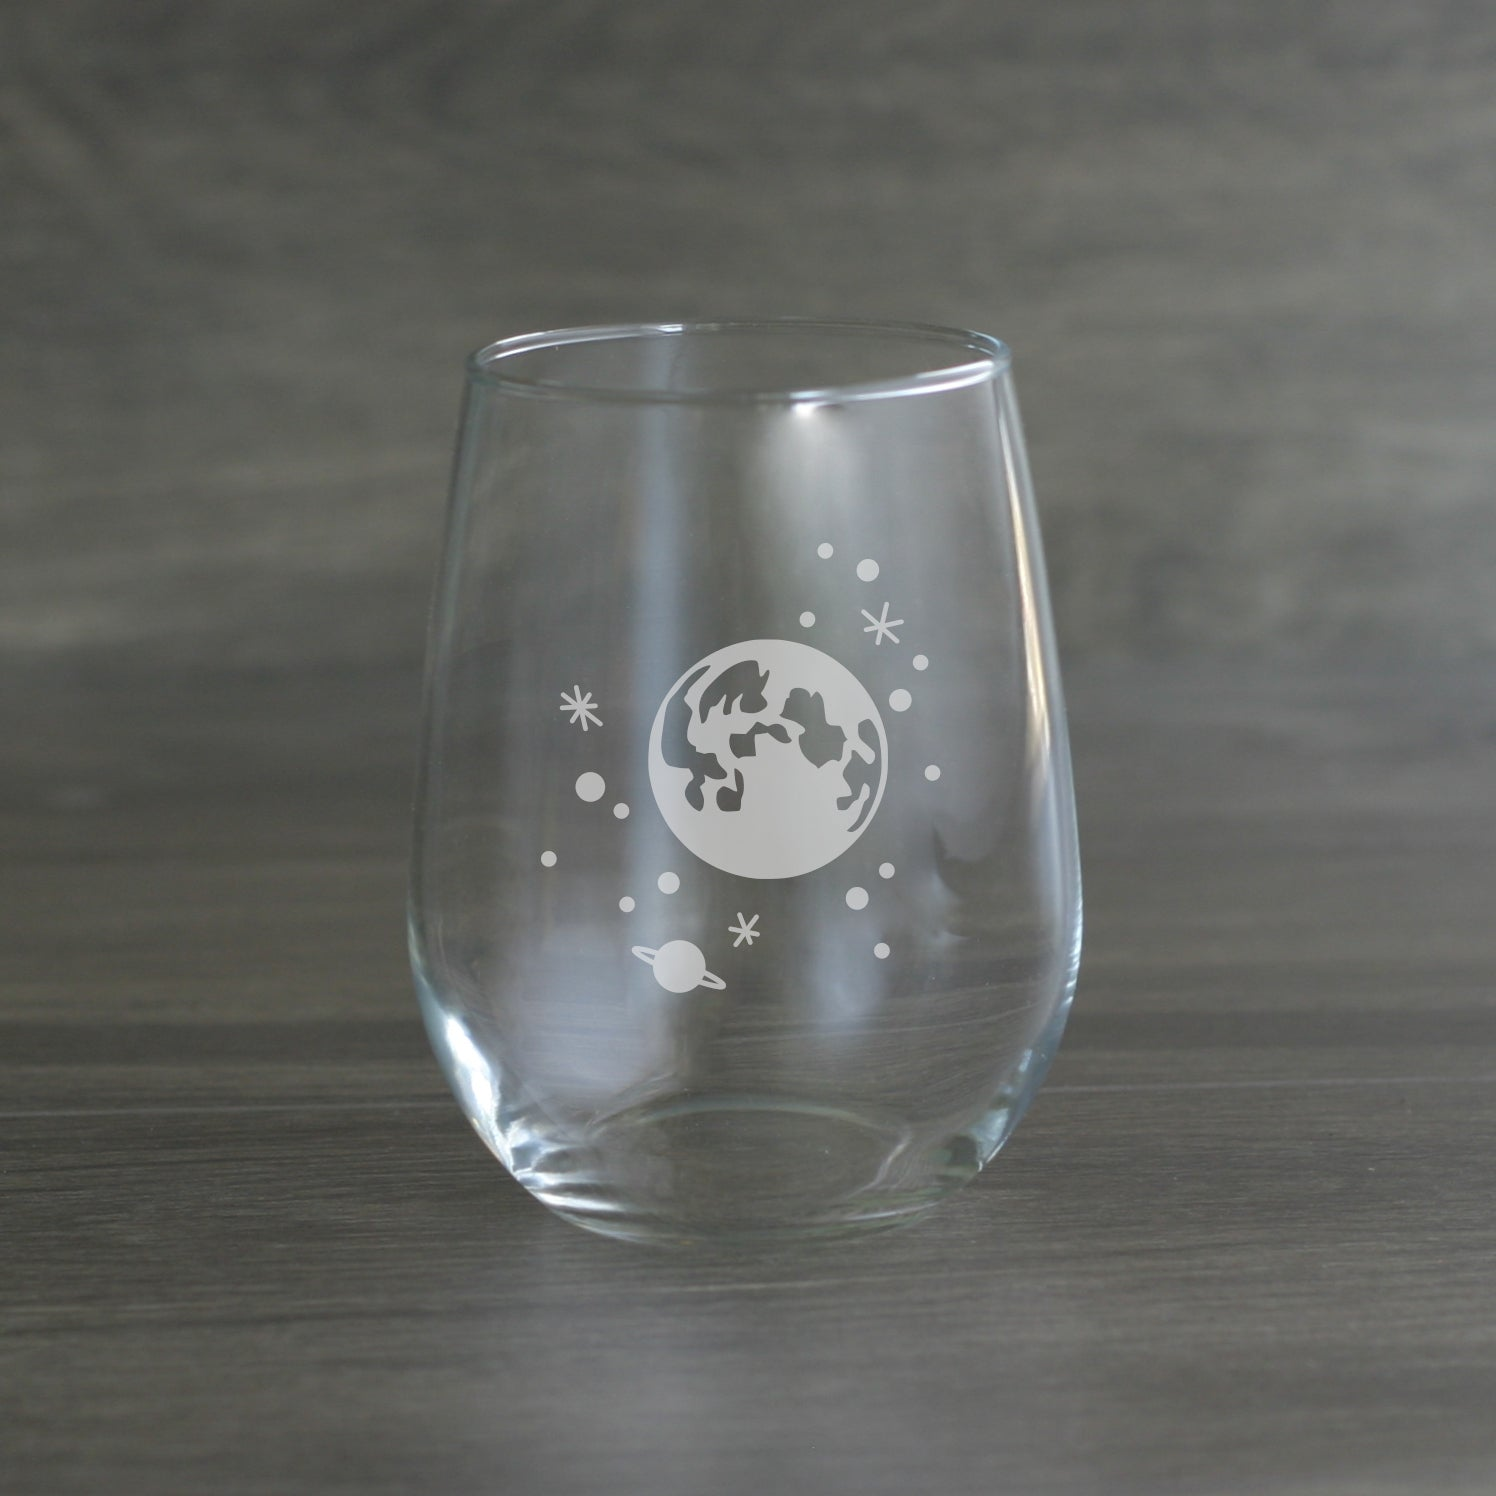 Full moon and stars wine glass